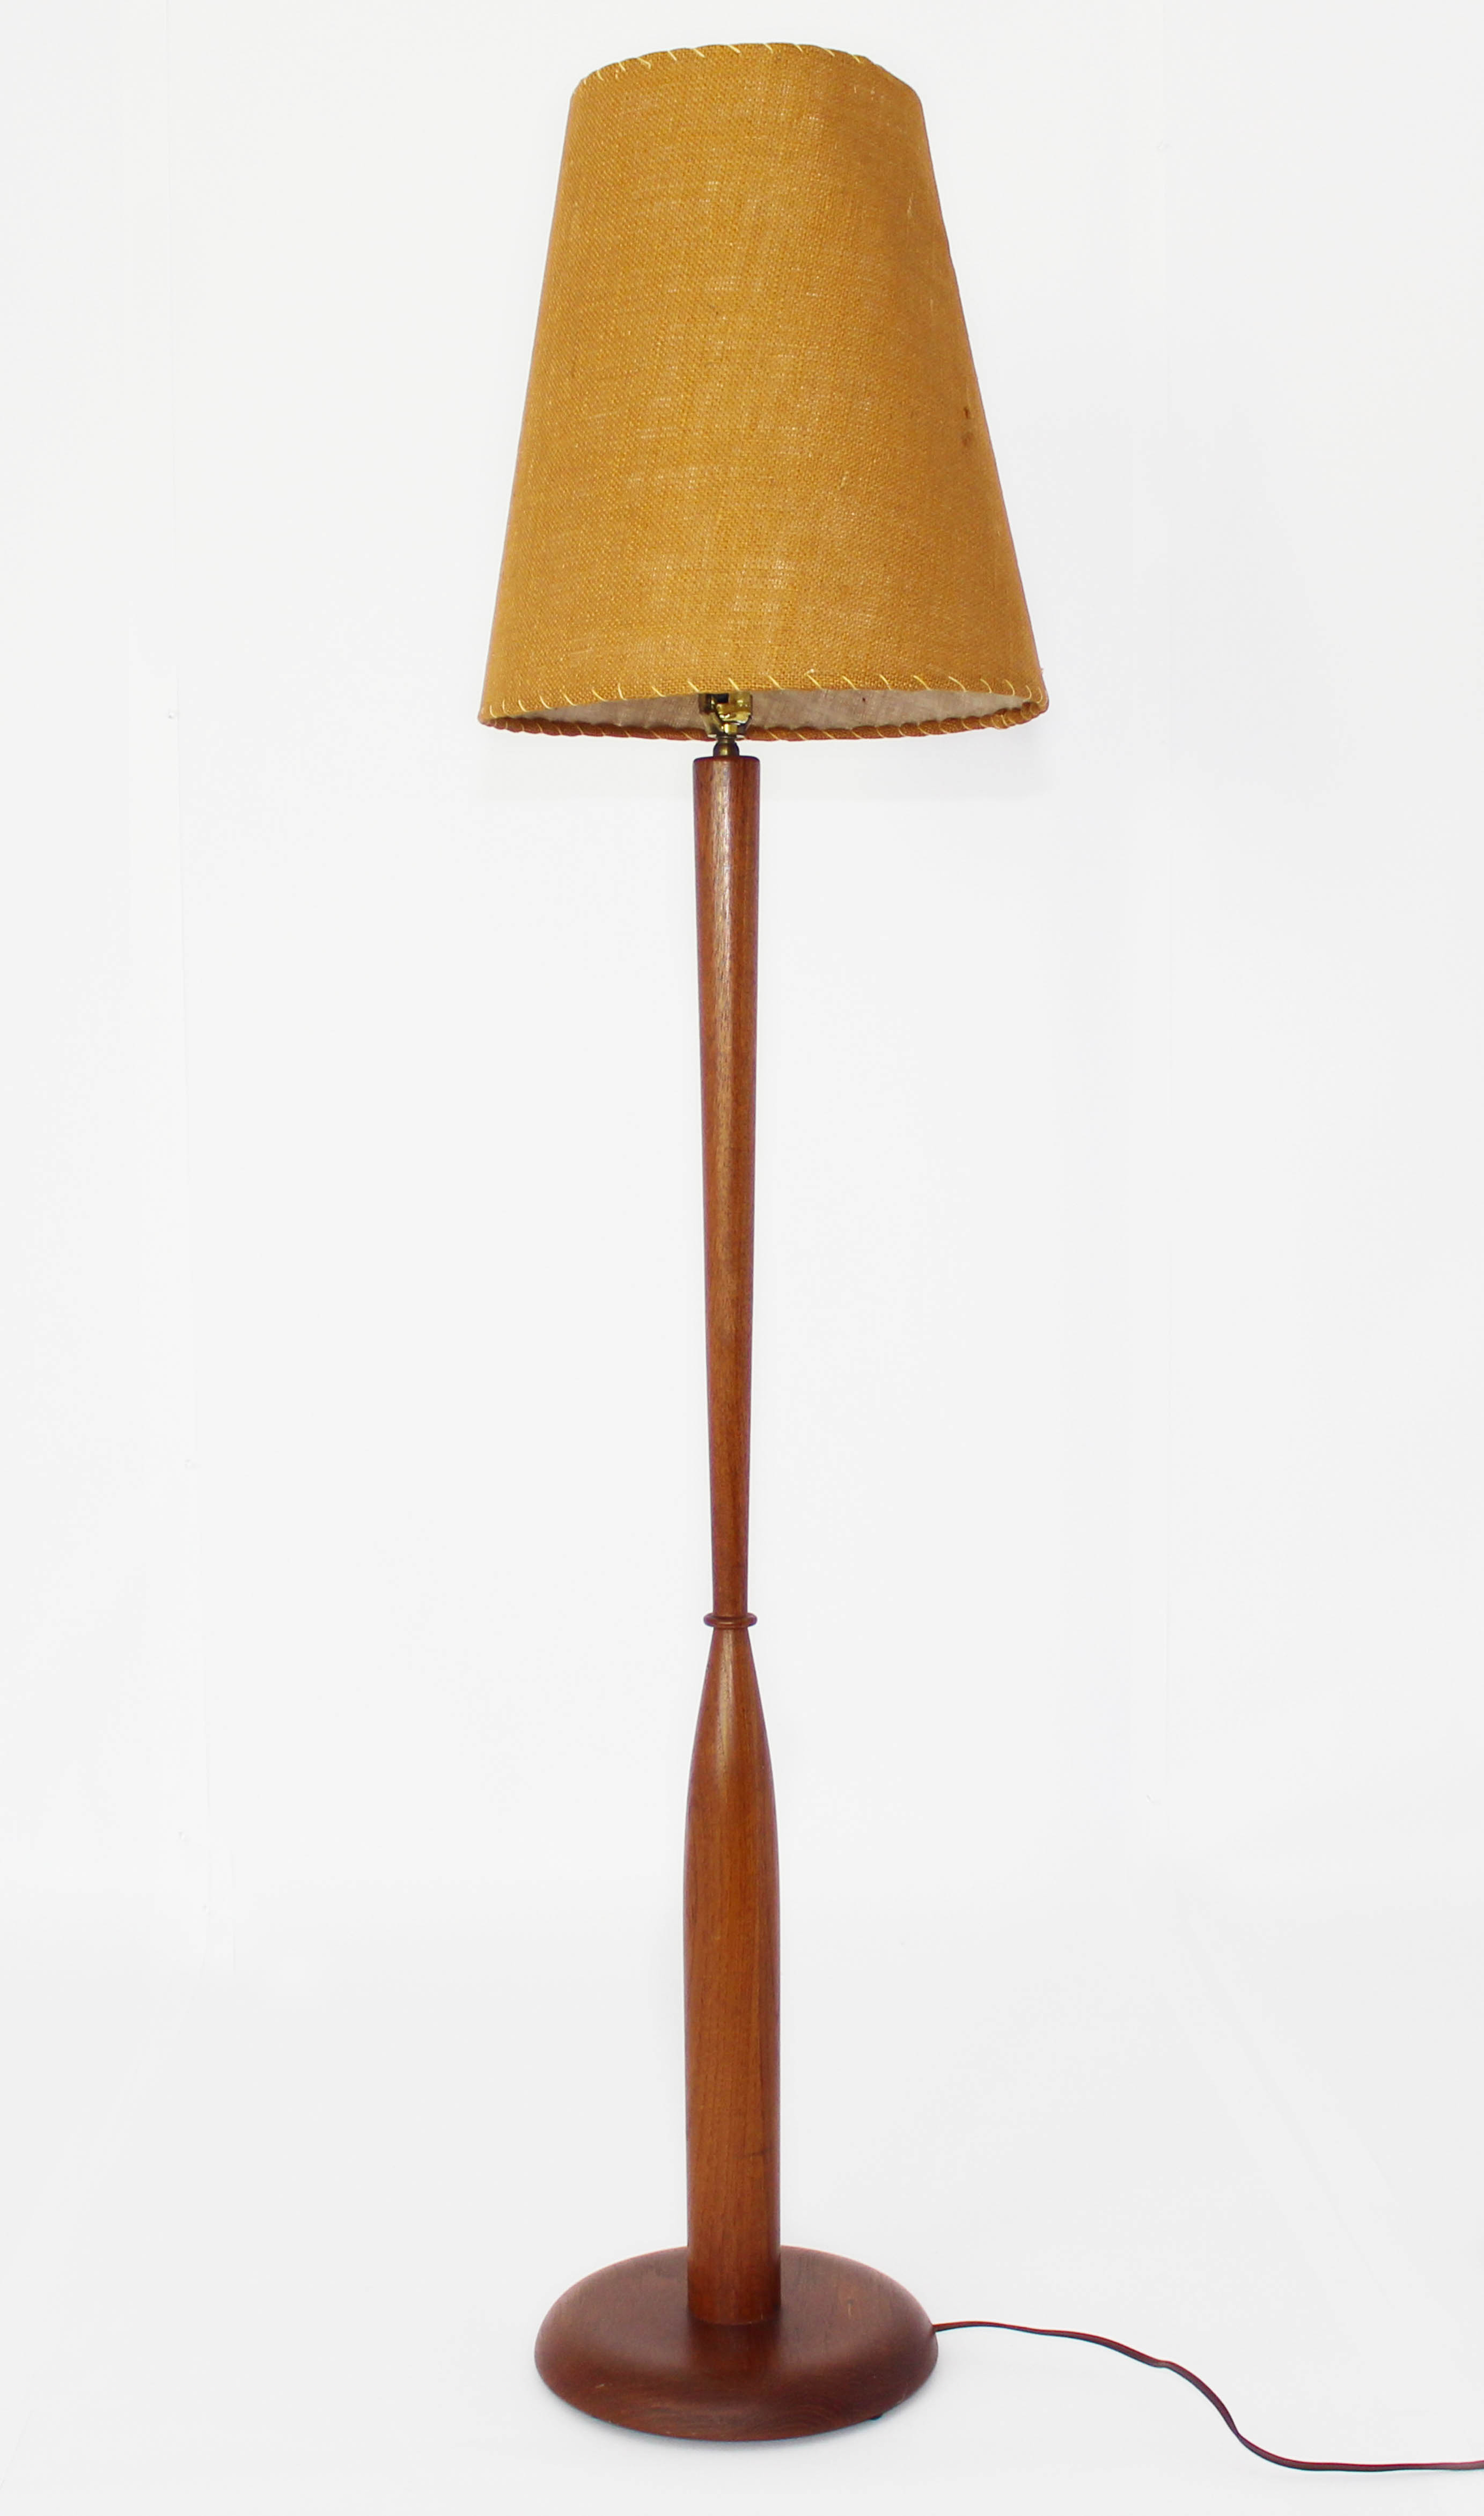 Retro Danish Mid Century Teak Floor Lamp Mansion Decor